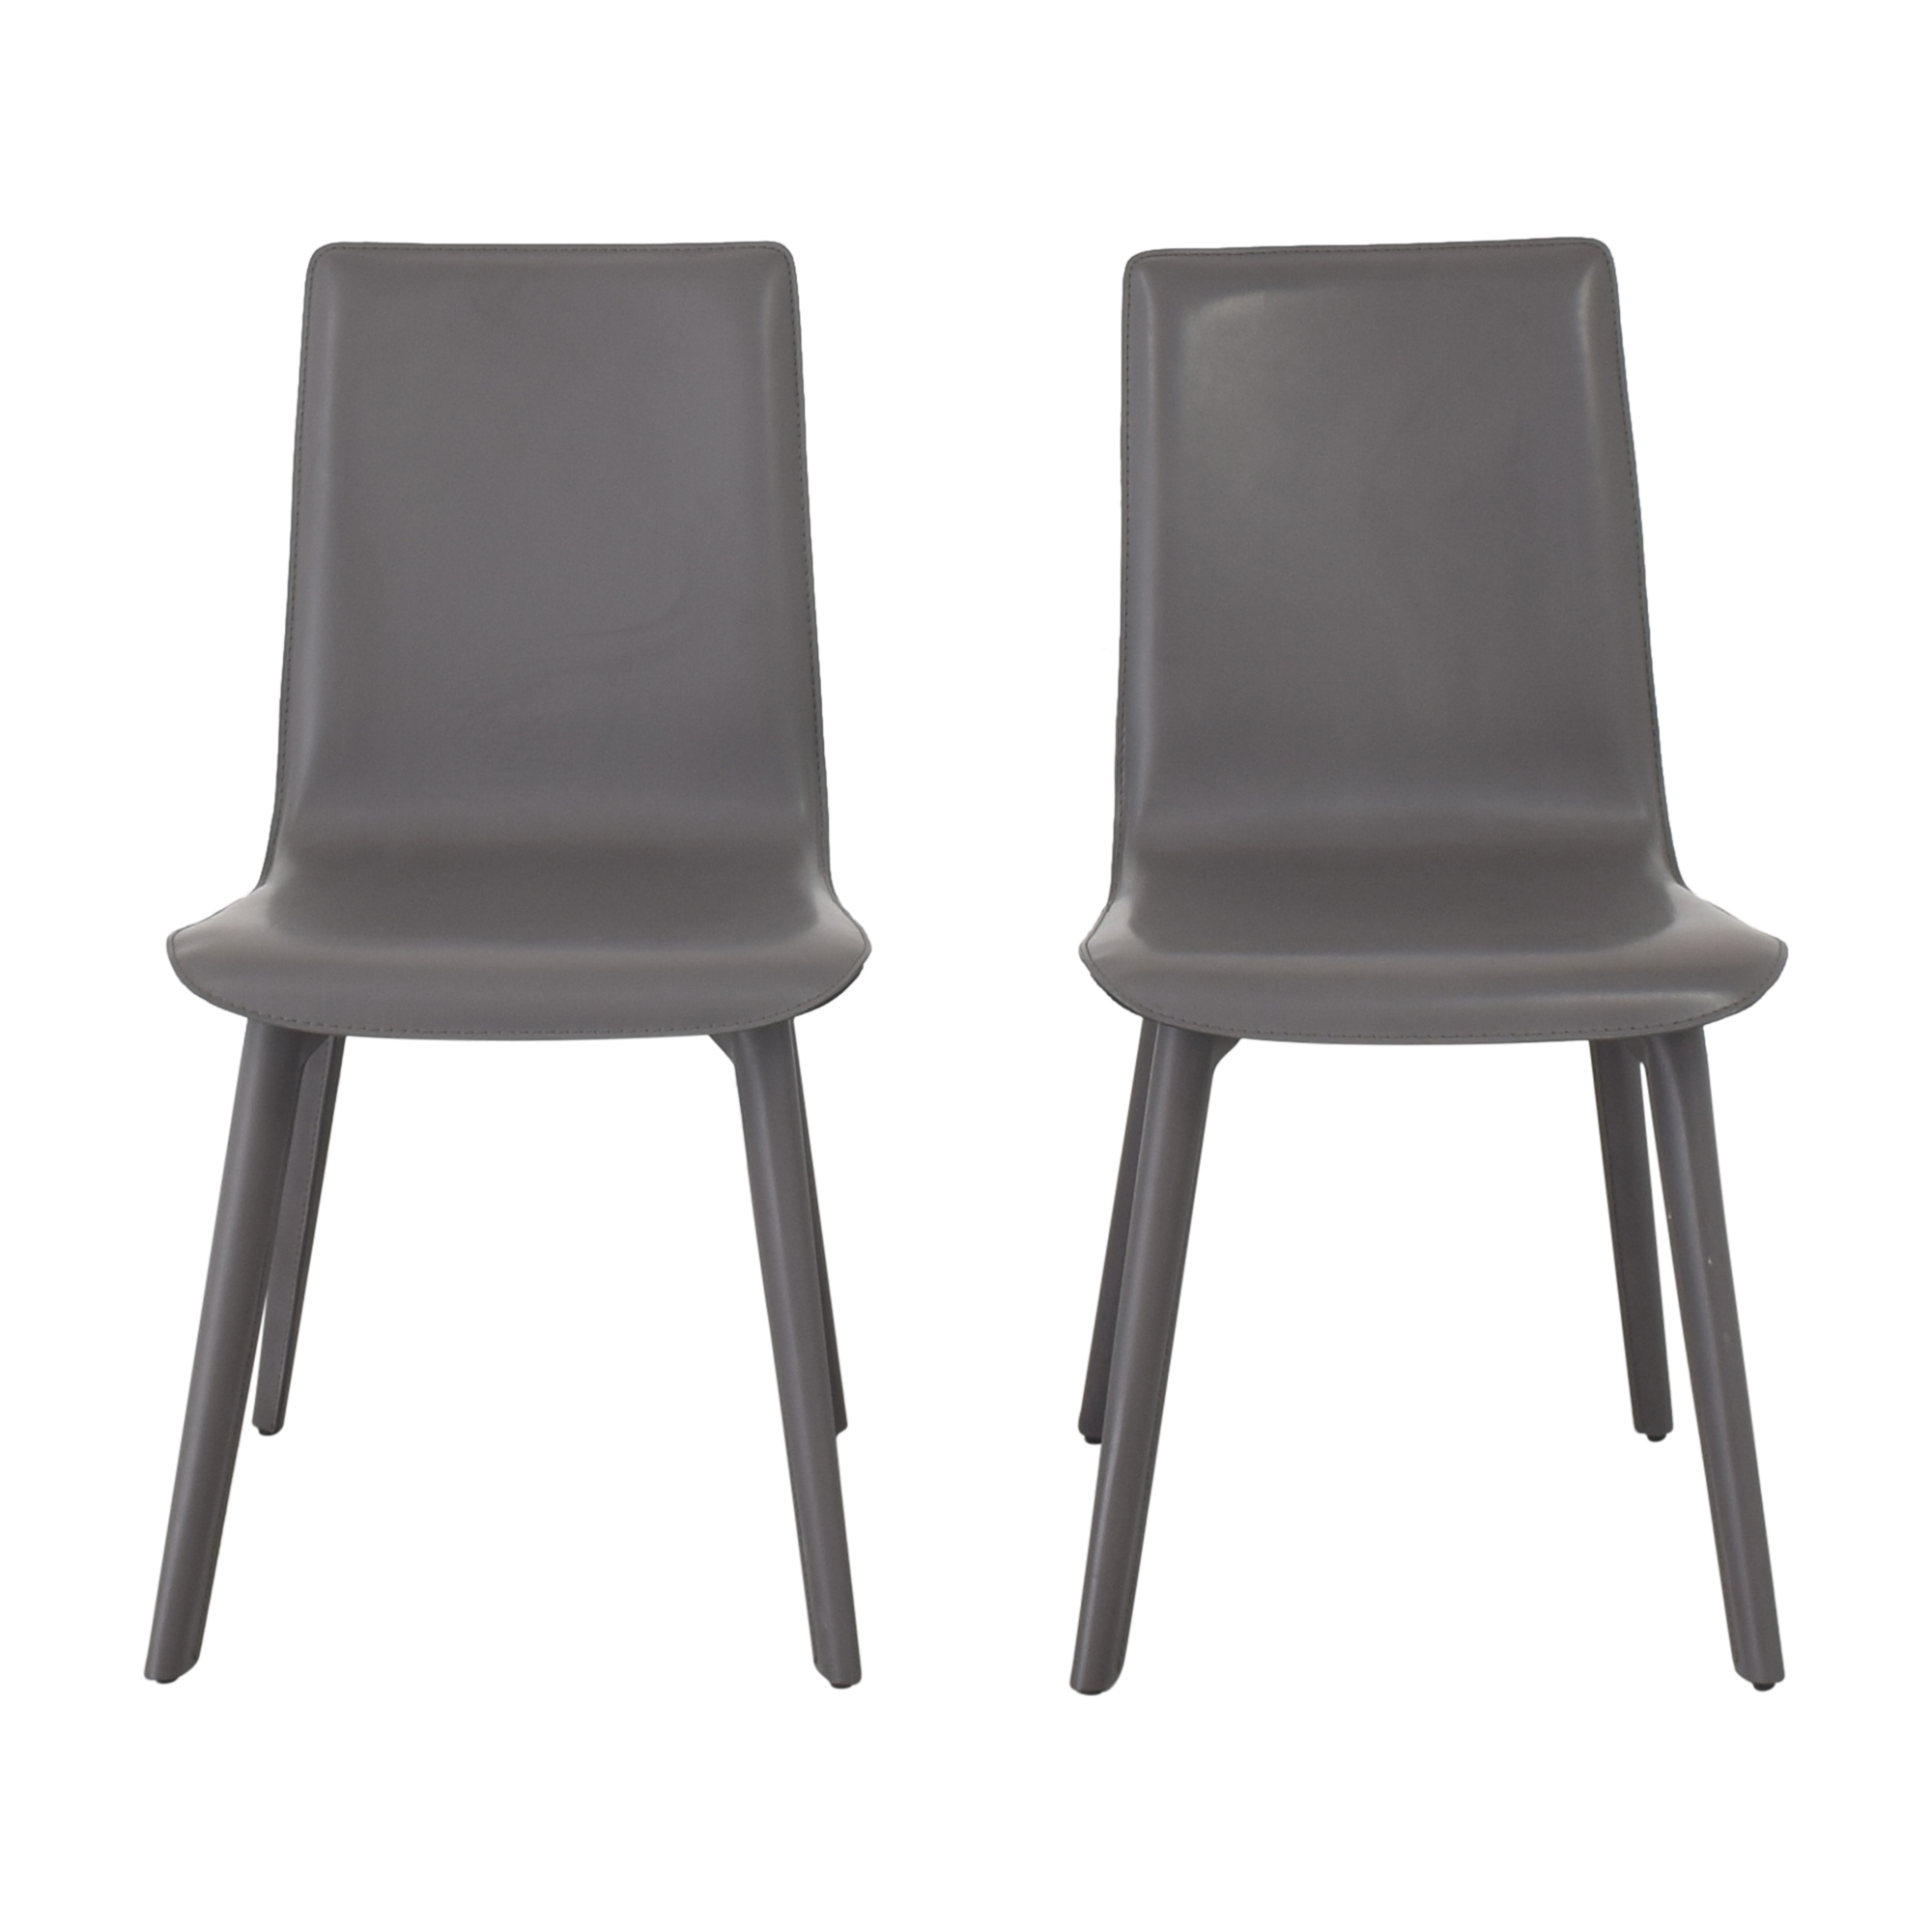 Room & Board Room & Board Hirsch Dining Chairs price